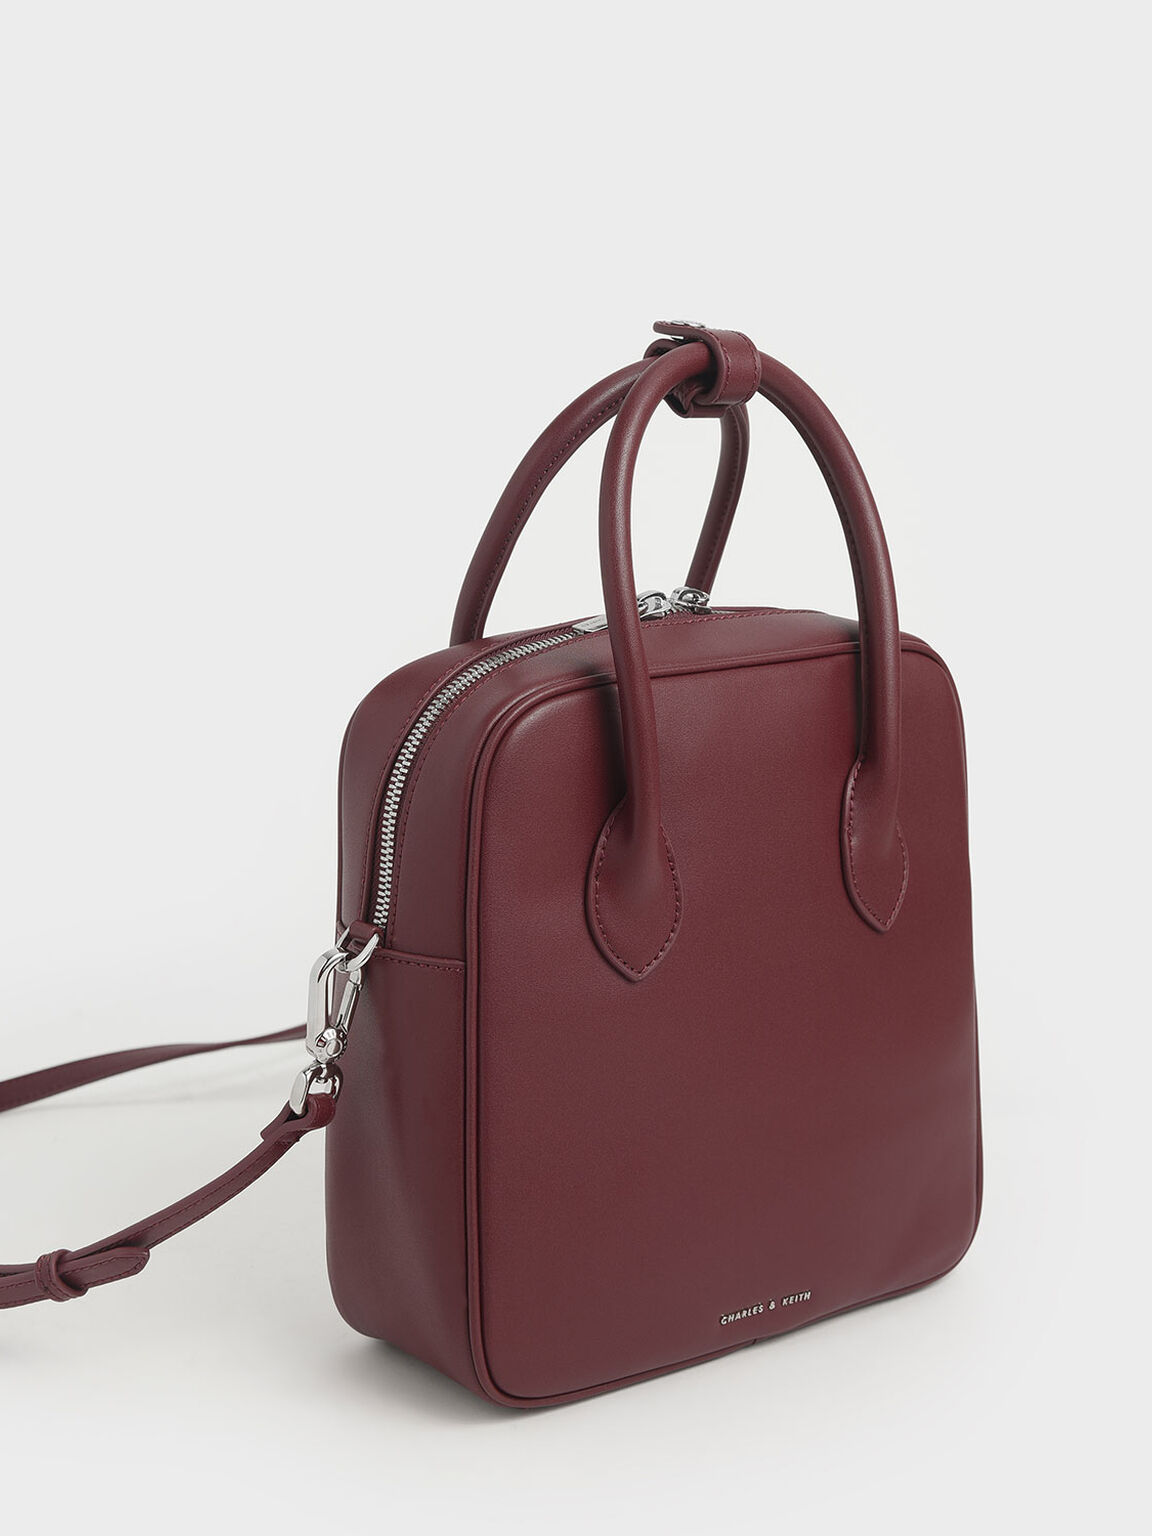 Double Handle Square Tote, Burgundy, hi-res